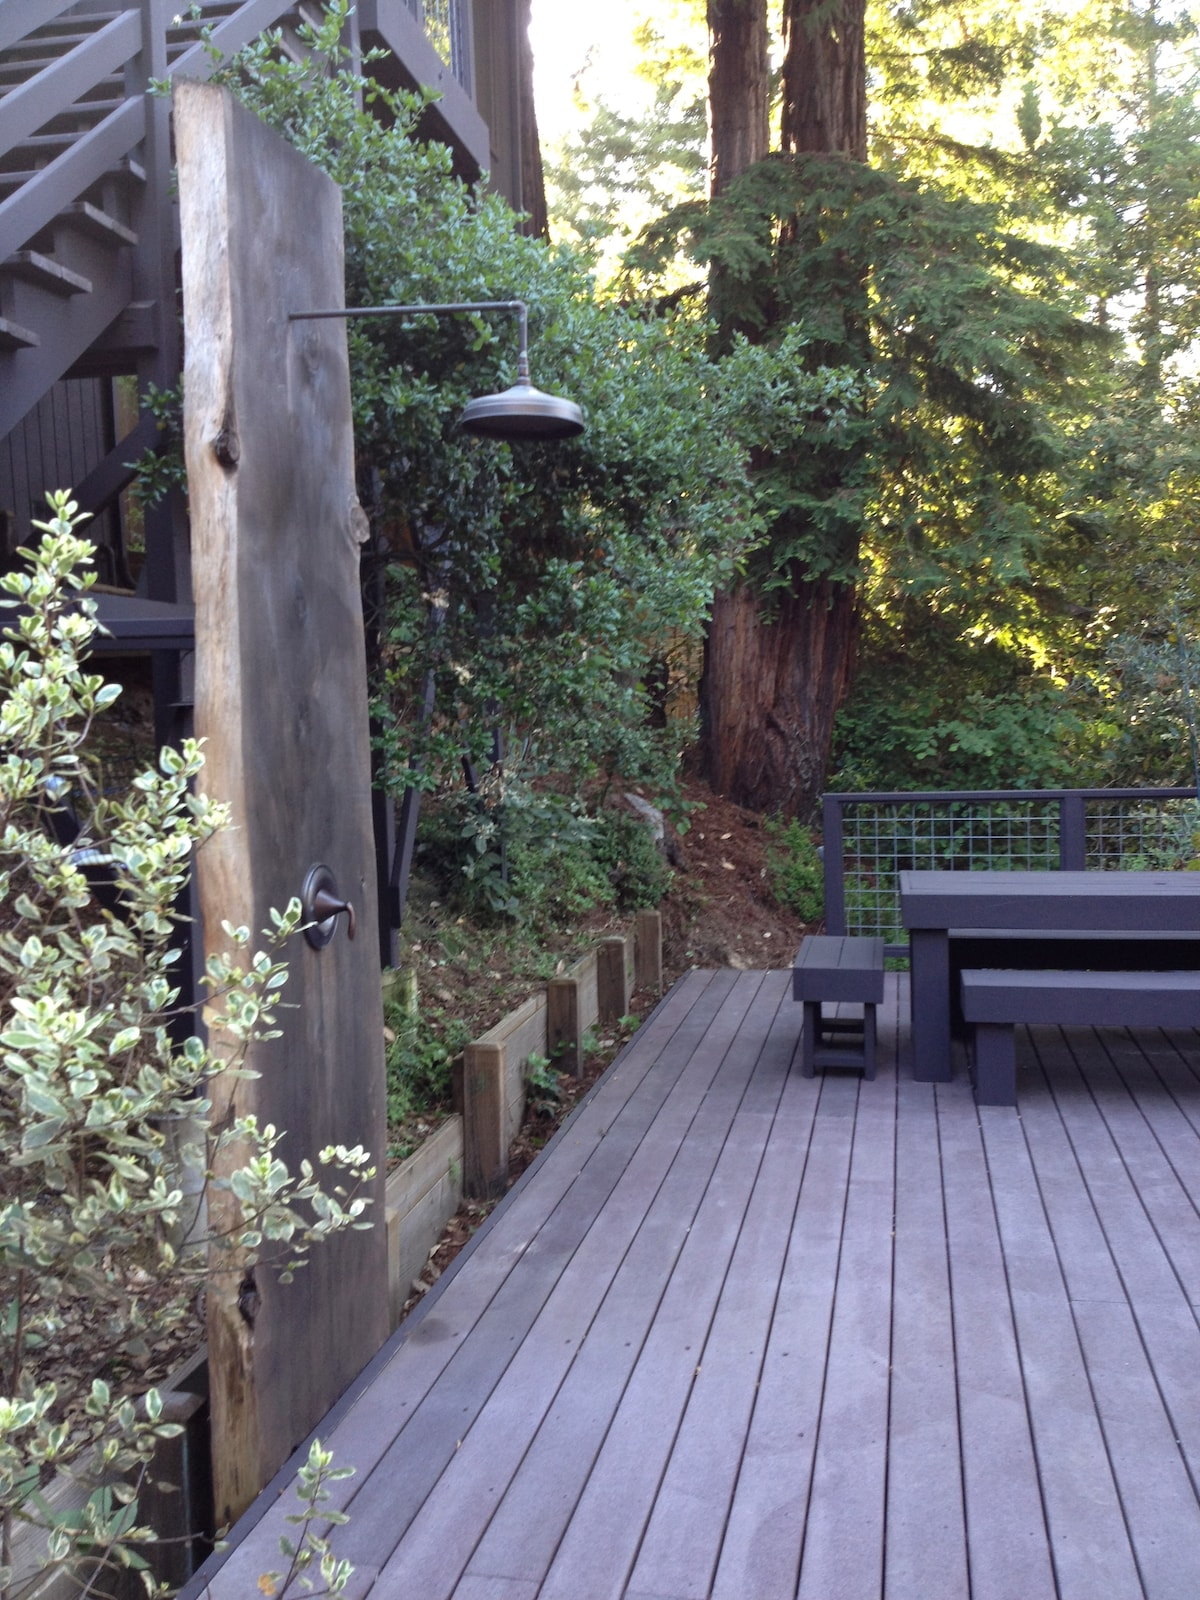 Outdoor shower and custom built picnic table from a 1970s Sunset book